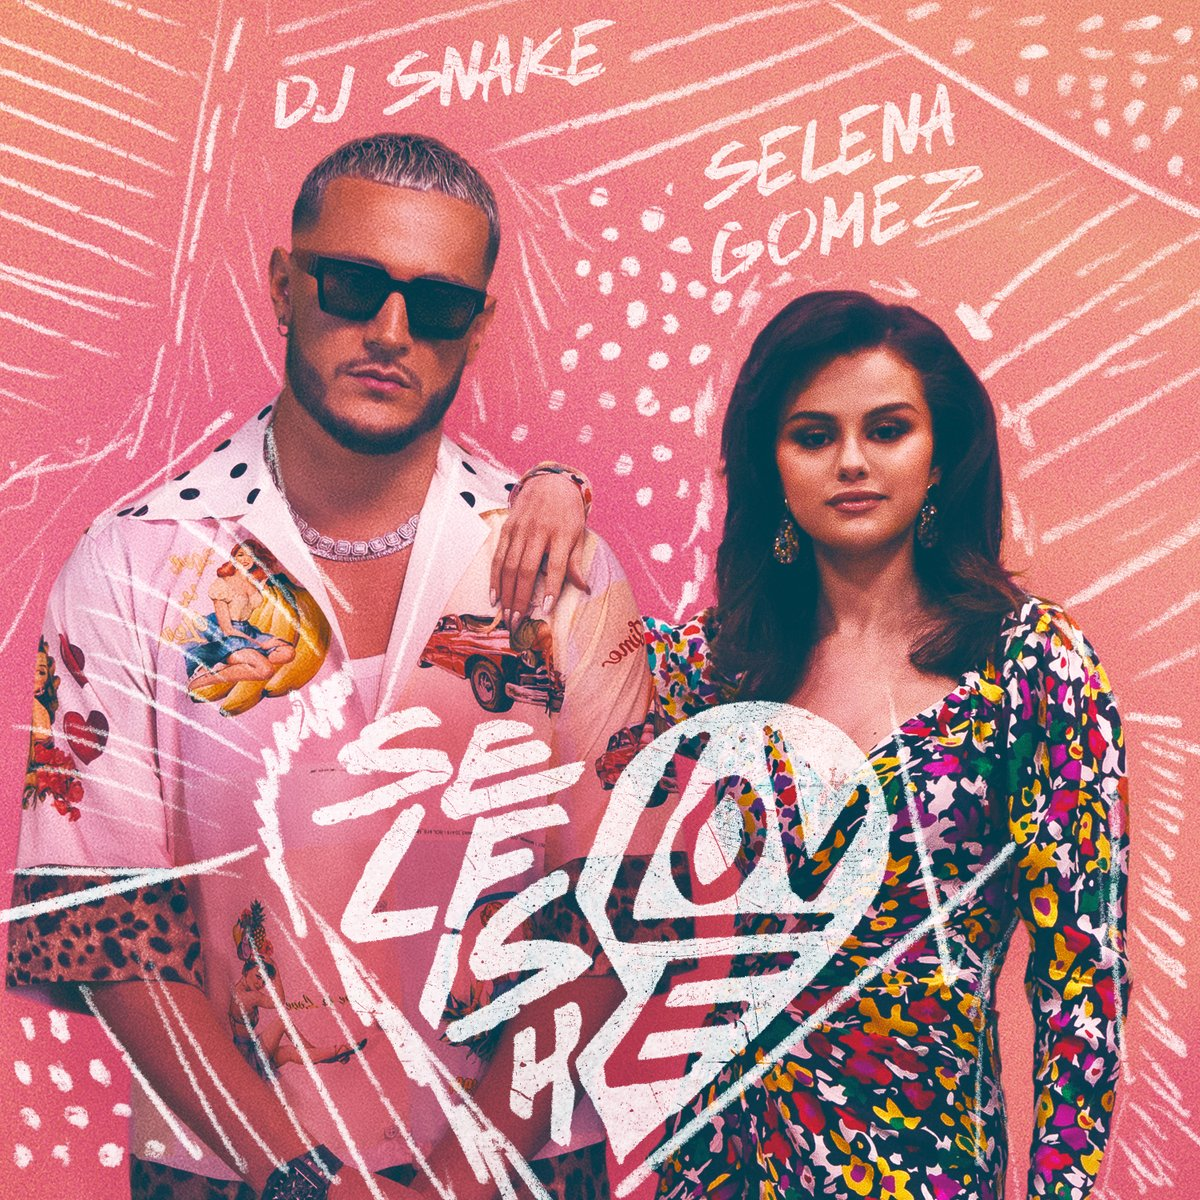 Selfish Love with @djsnake is out now everywhere!! 💞🎷